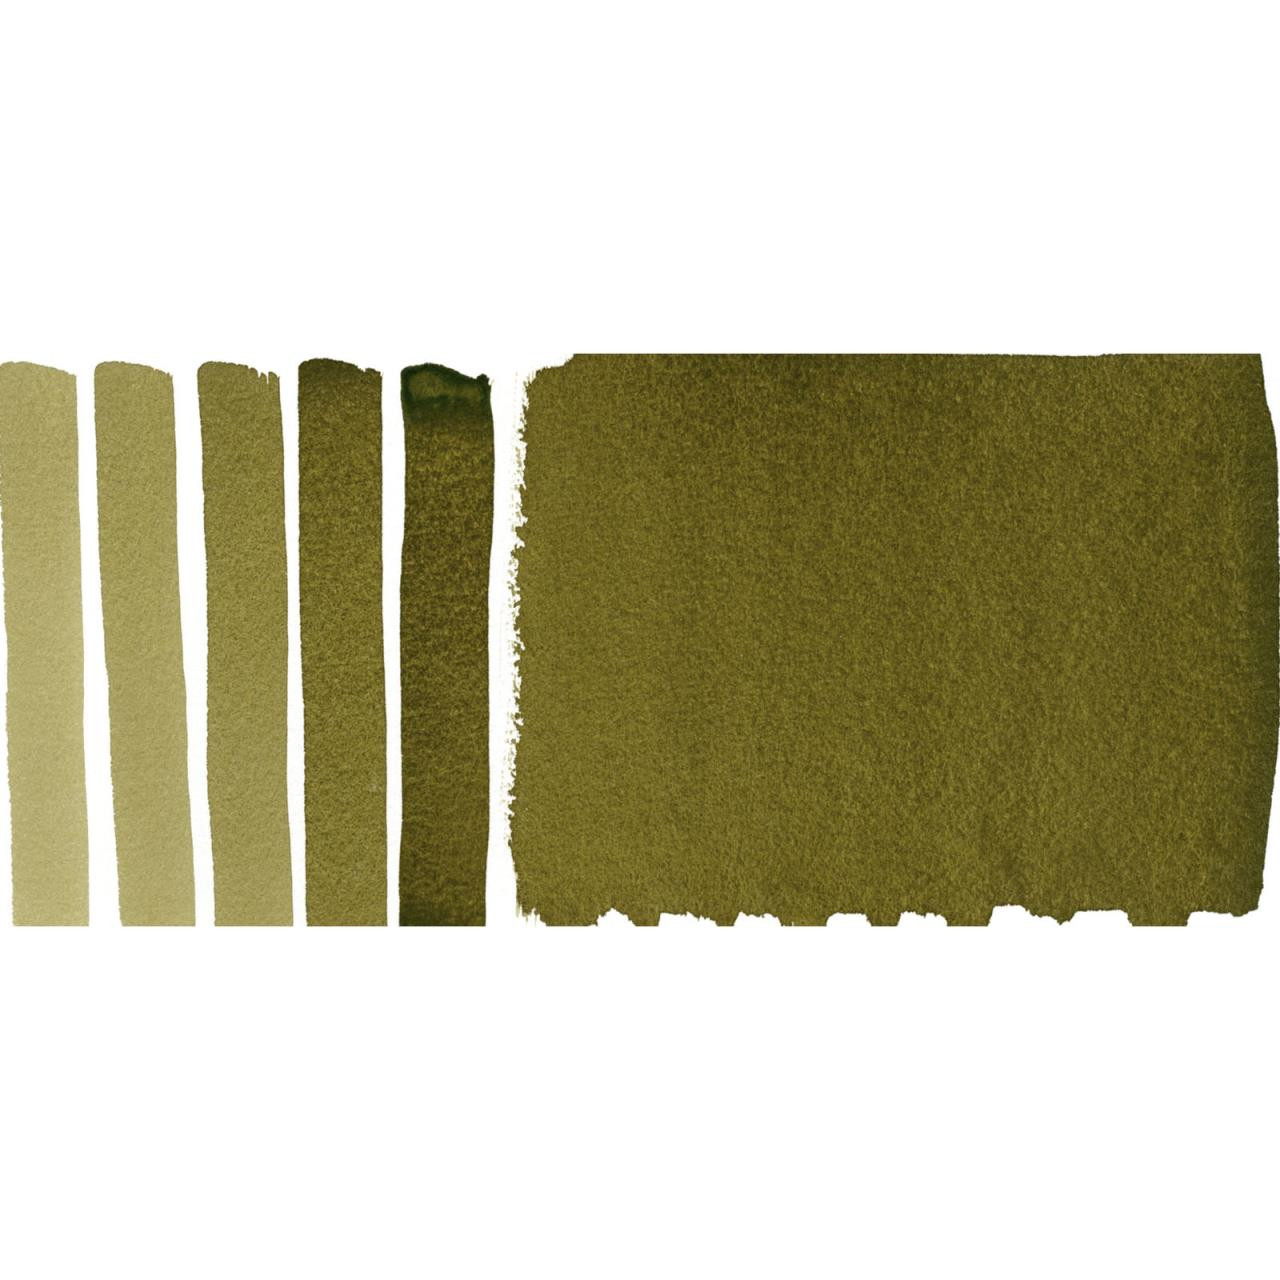 Olive Green, DANIEL SMITH Extra Fine Watercolors 15ml Tubes -